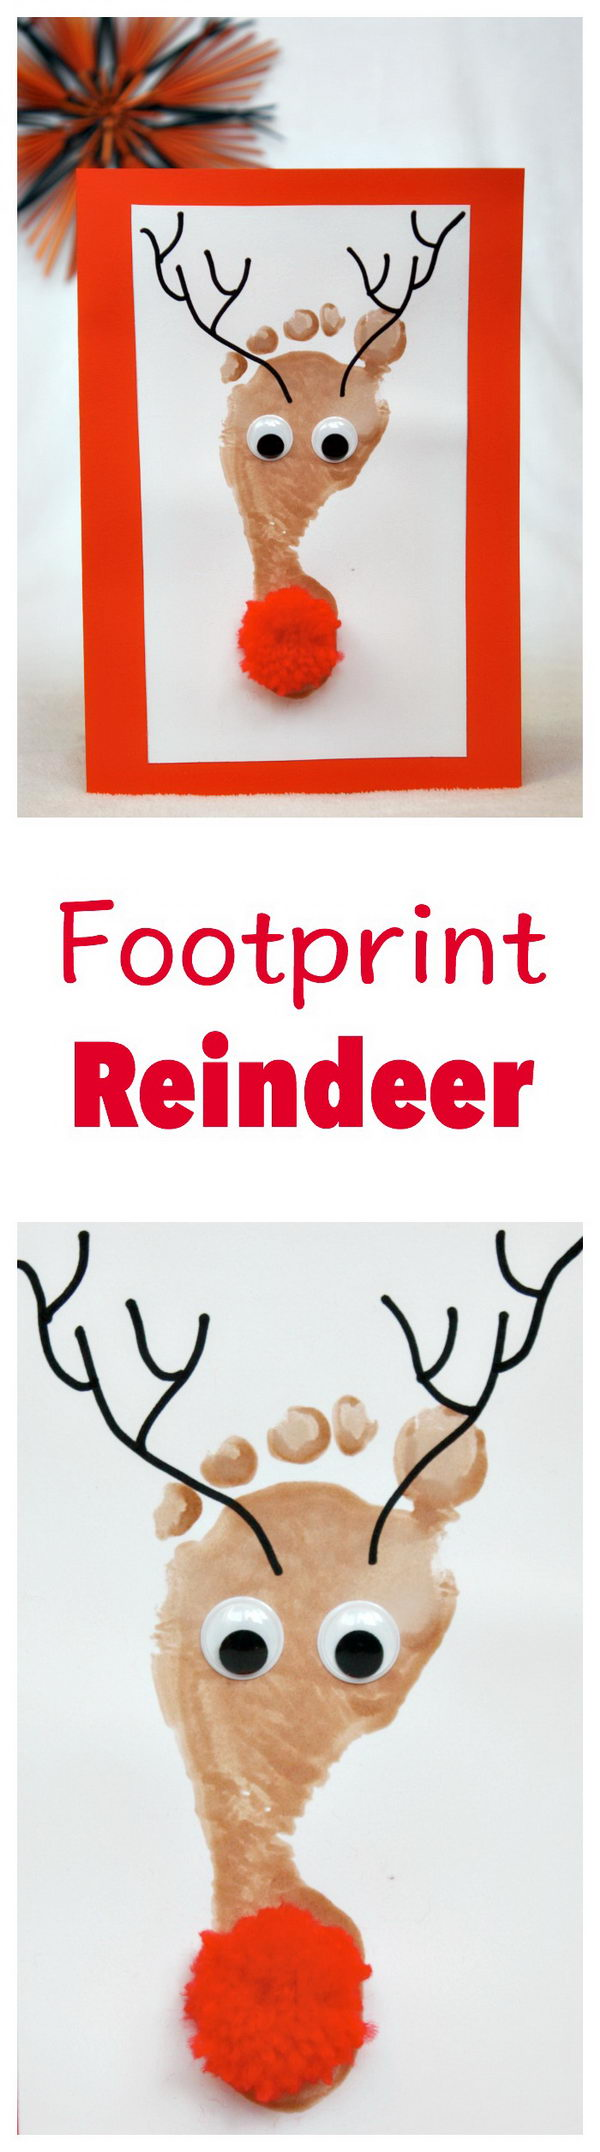 Super Easy And Cute Reindeer Footprint Christmas Cards.